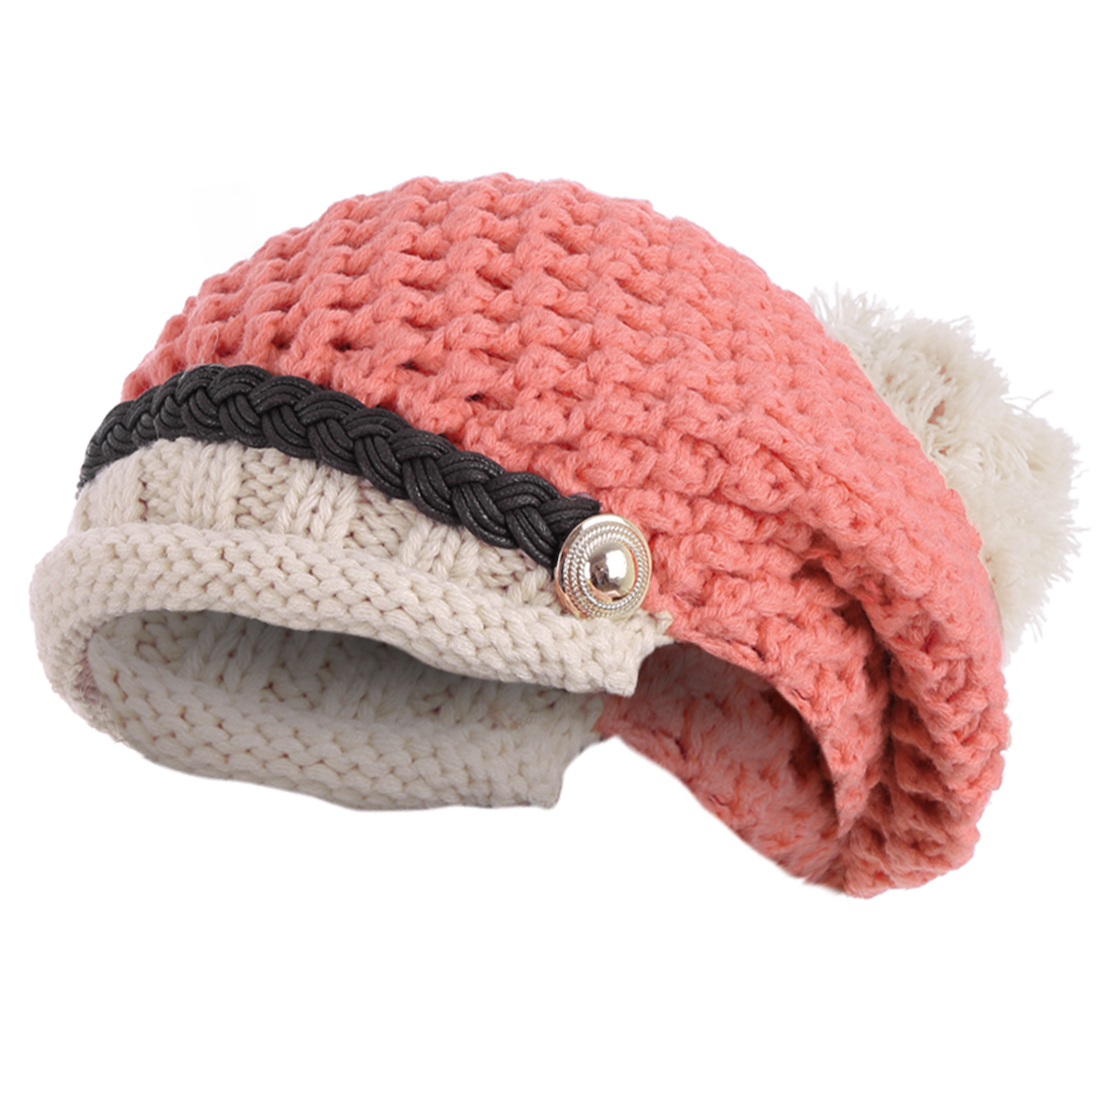 Ladies Chic Textured Design Pink Beige Warm Cable-Knitted Hat